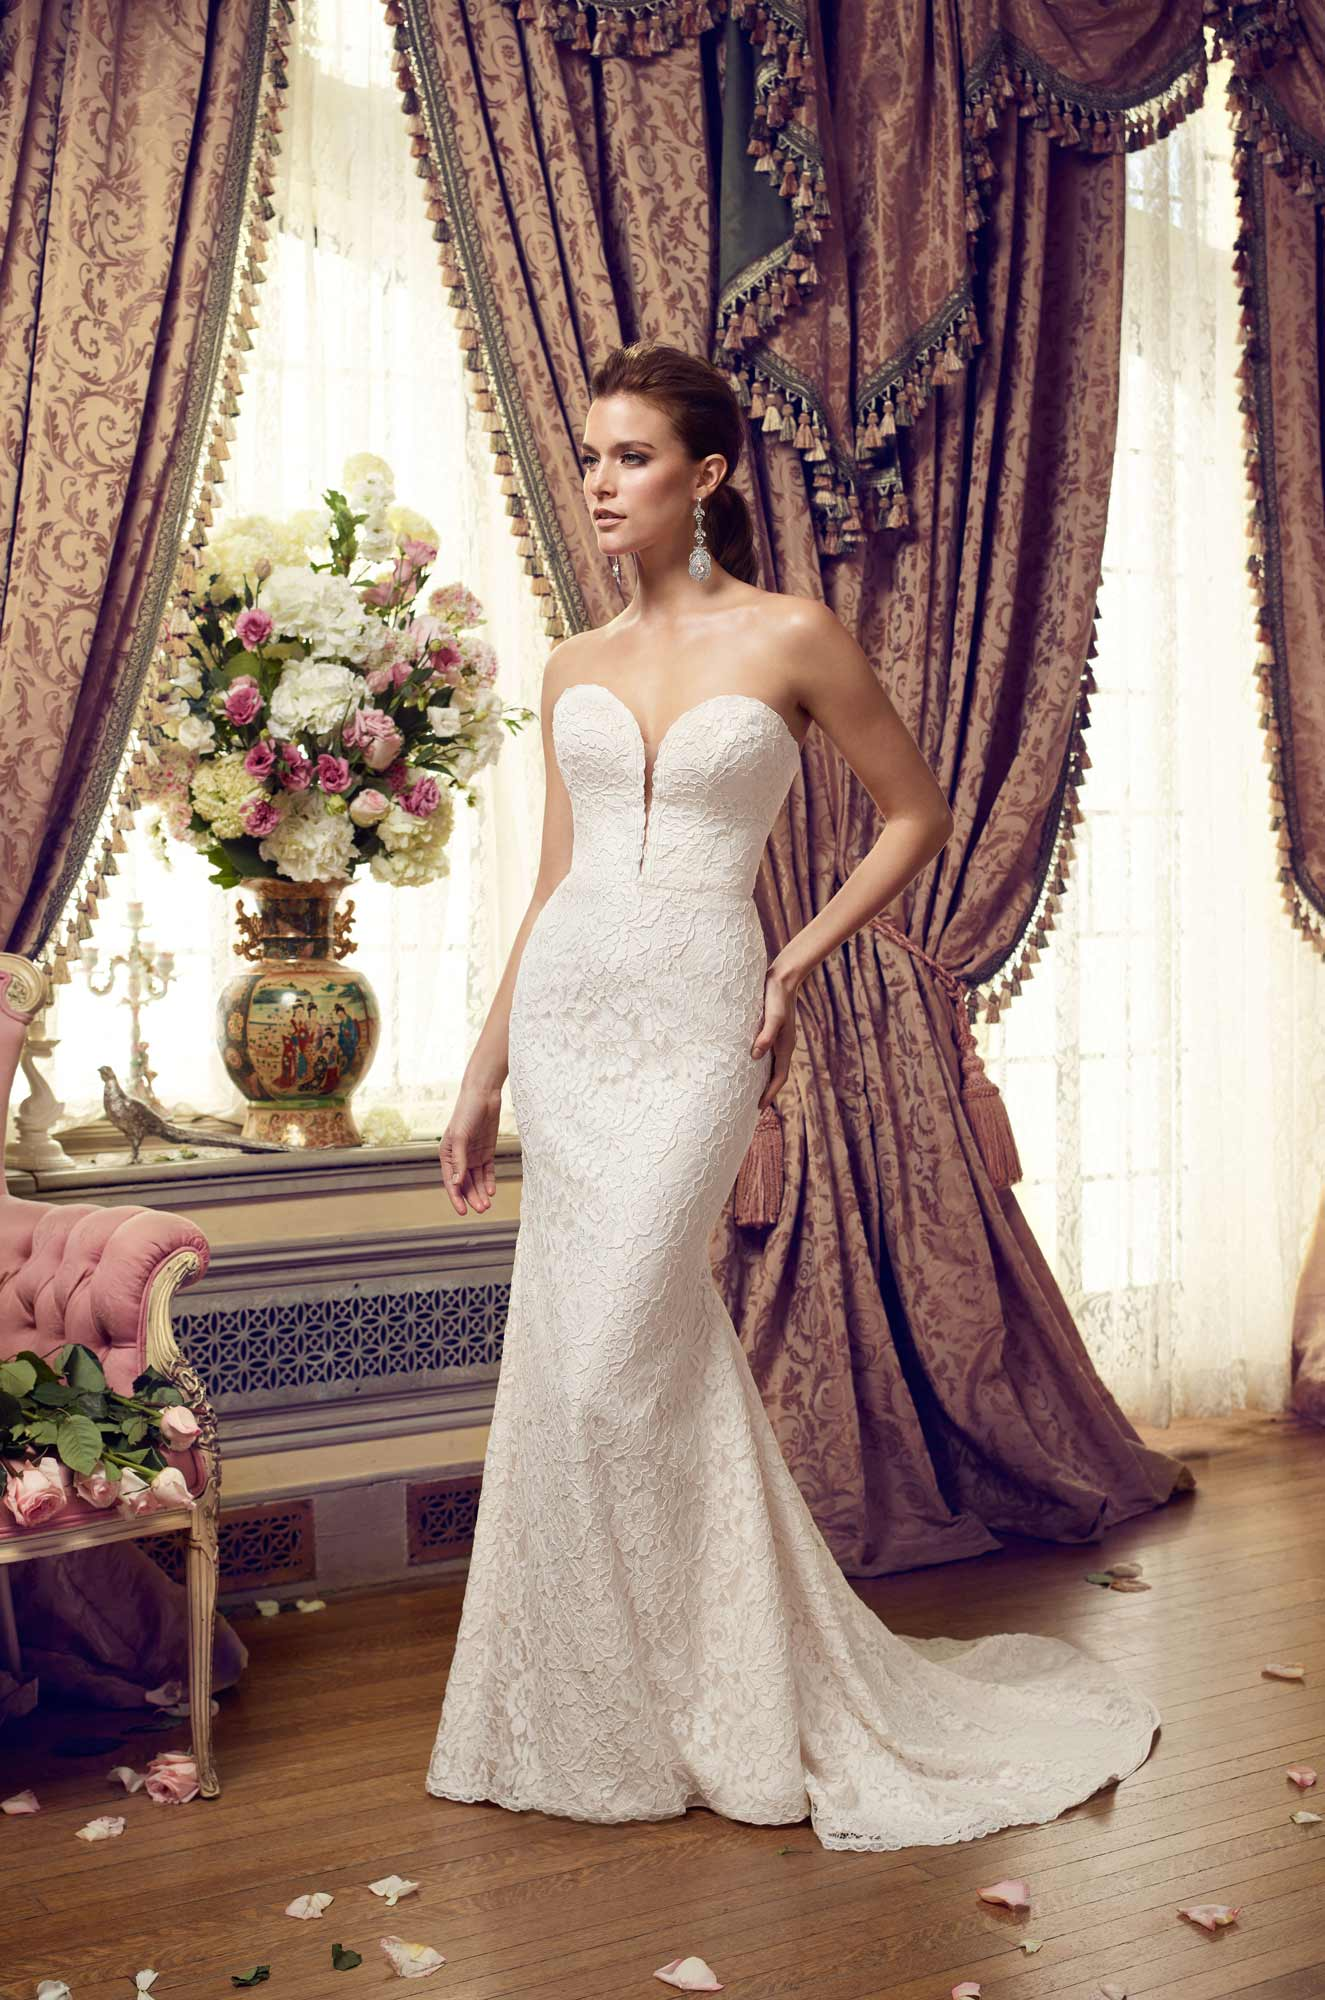 Ethereal Skirt Wedding Dress - Style #2152 | Mikaella Bridal